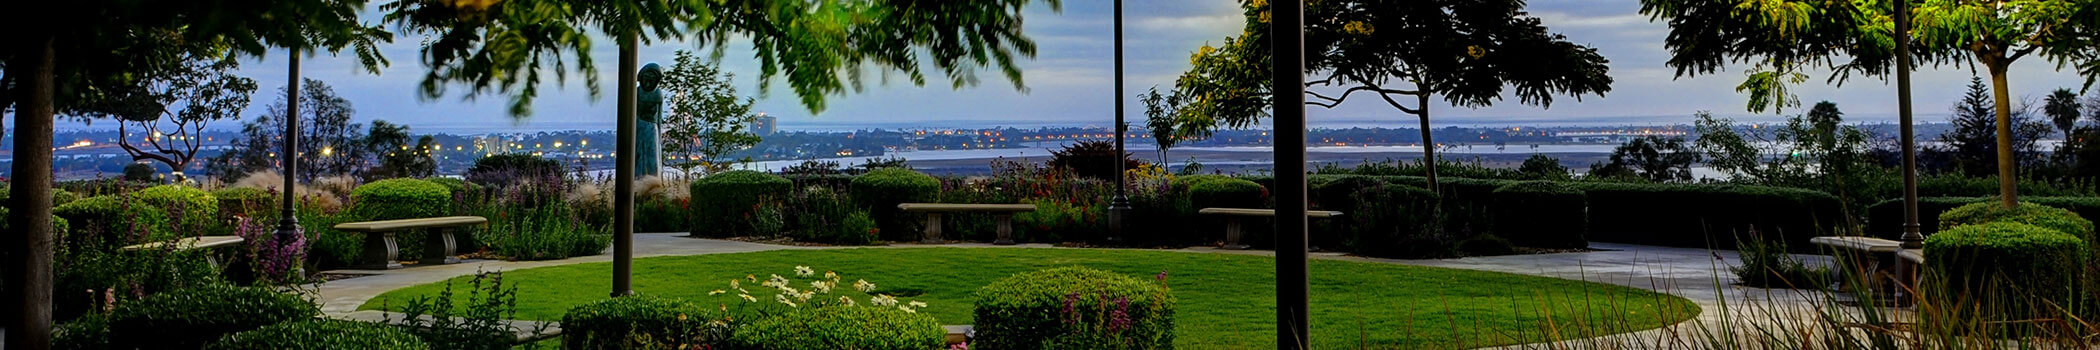 View from USD campus.